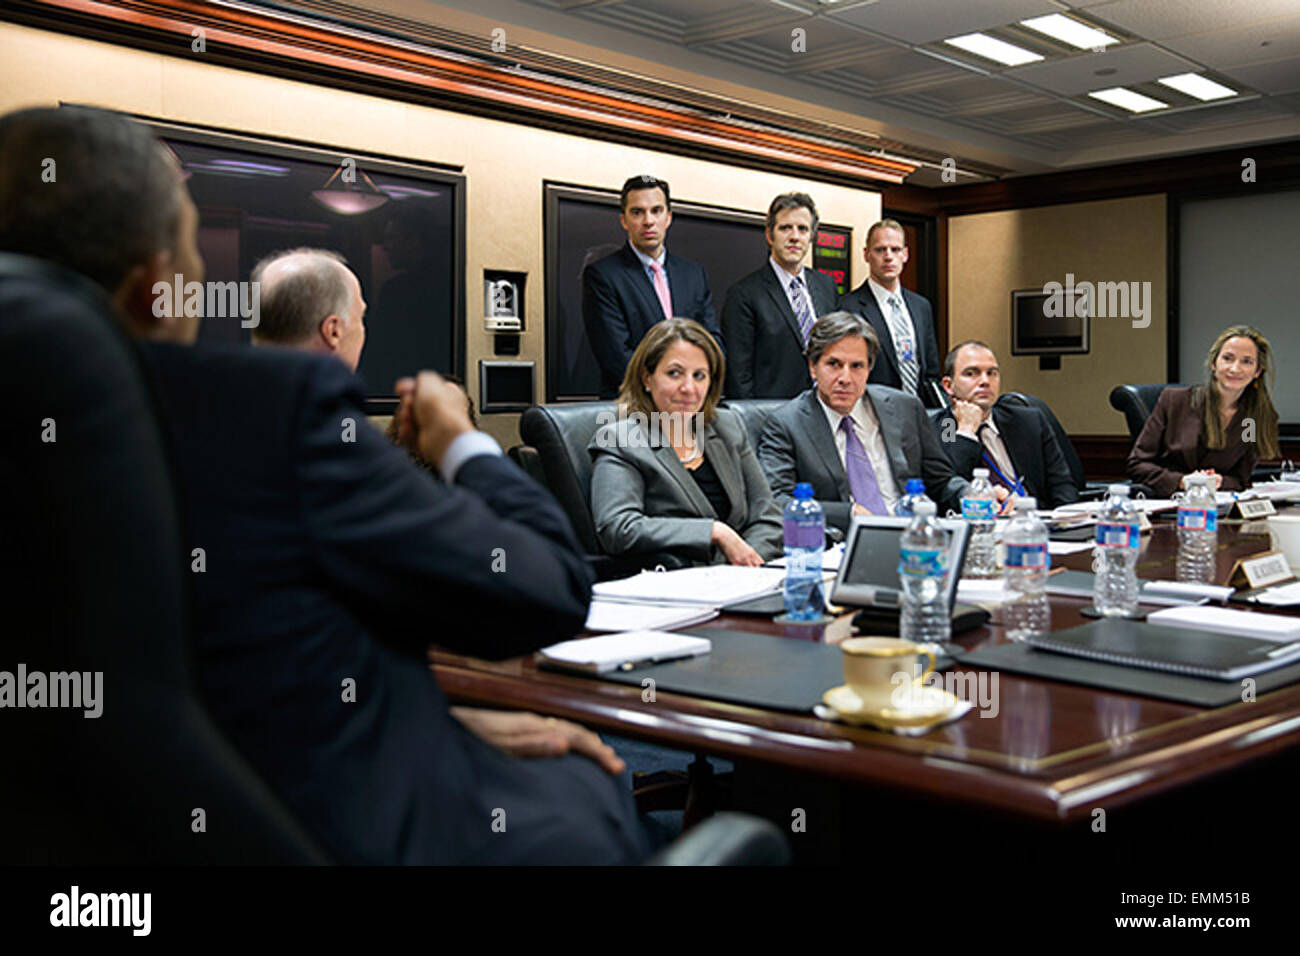 02.APRIL.2013. WASHINGTON D.C.  PRESIDENT BARACK OBAMA ATTENDS A MEETING IN THE SITUATION ROOM OF THE WHITE HOUSE, - Stock Image